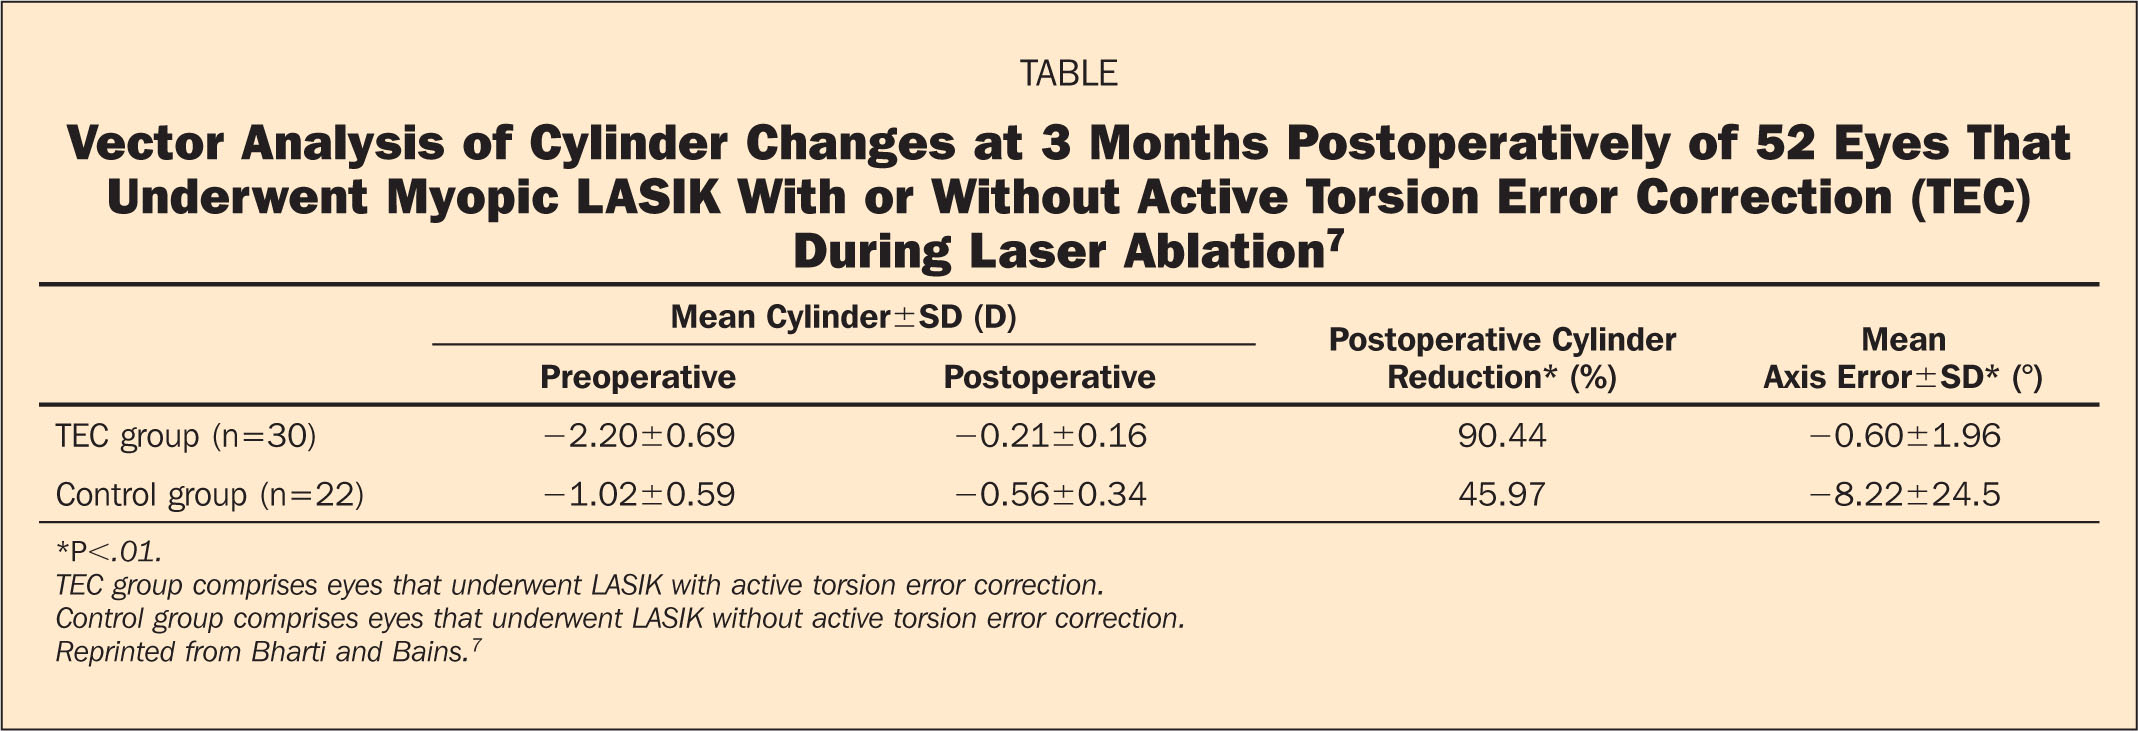 Vector Analysis of Cylinder Changes at 3 Months Postoperatively of 52 Eyes that Underwent Myopic LASIK with or Without Active Torsion Error Correction (TEC) During Laser Ablation7